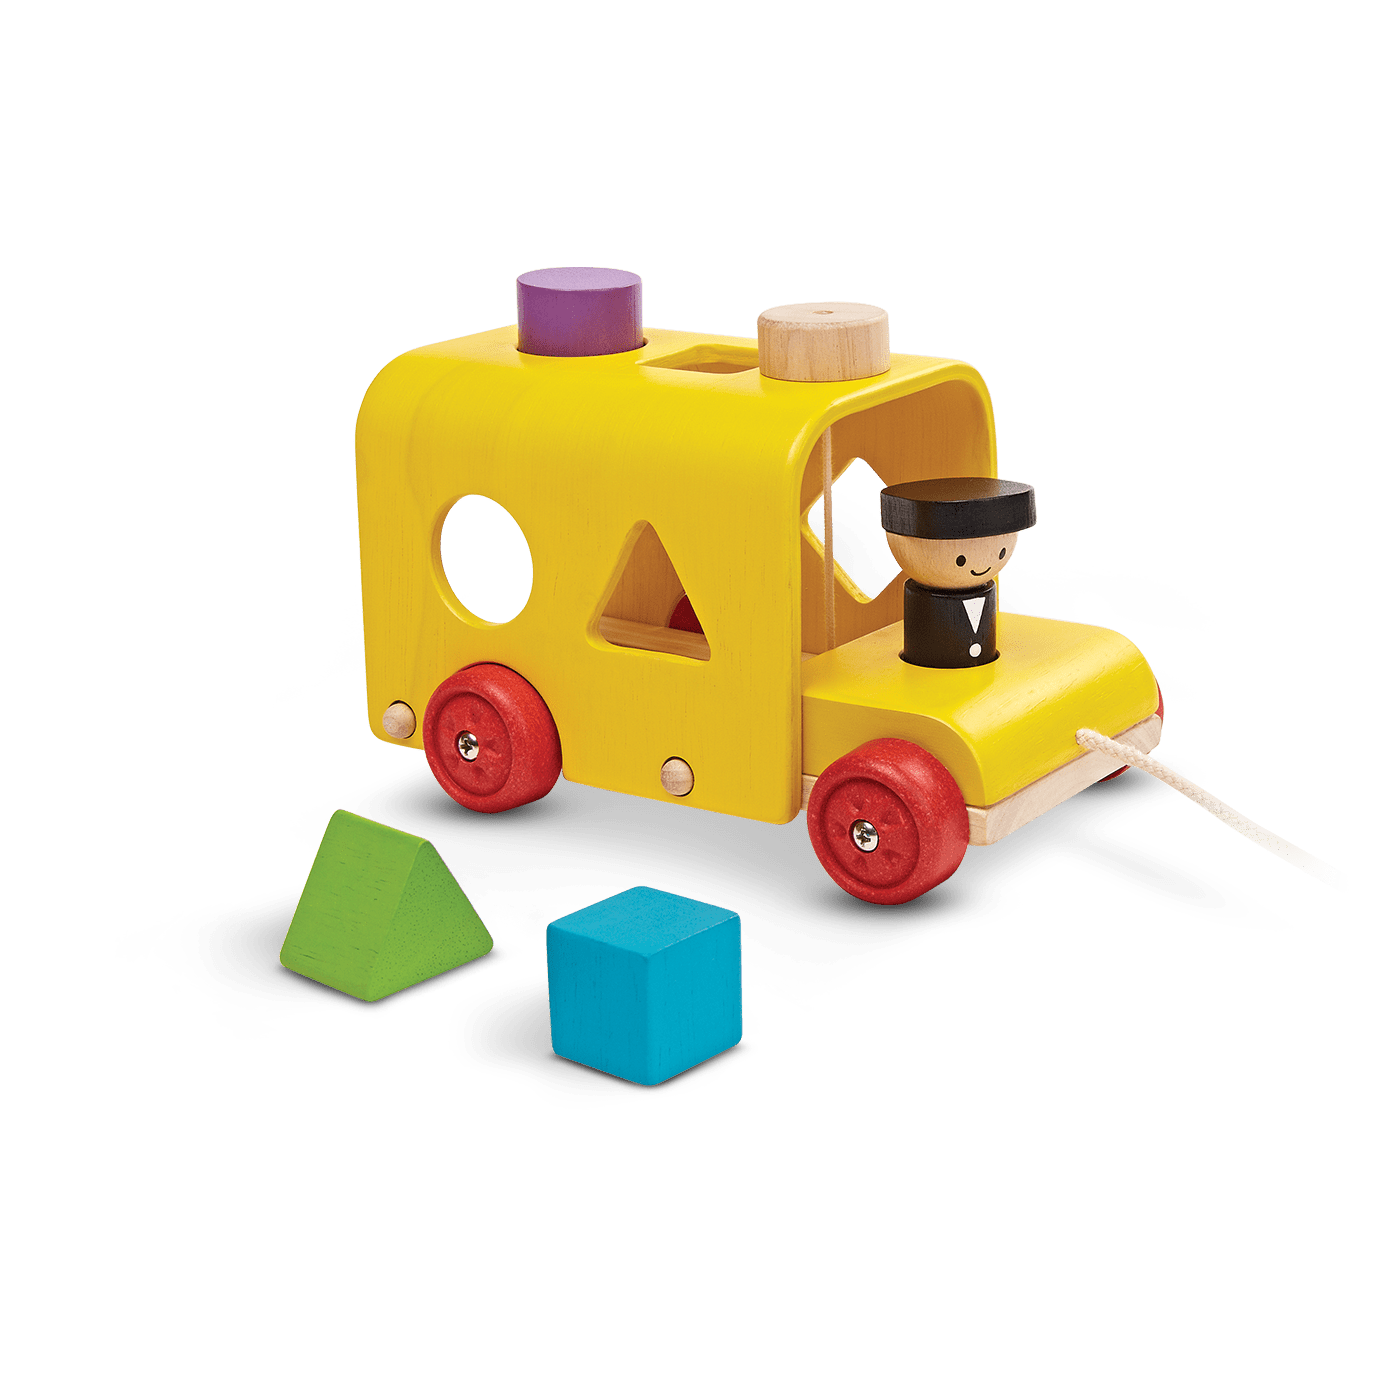 5121_PlanToys_SORTING_BUS_Learning_and_Education_Fine_Motor_Gross_Motor_Mathematical_Problem_Solving_12m_Wooden_toys_Education_toys_Safety_Toys_Non-toxic_0.png